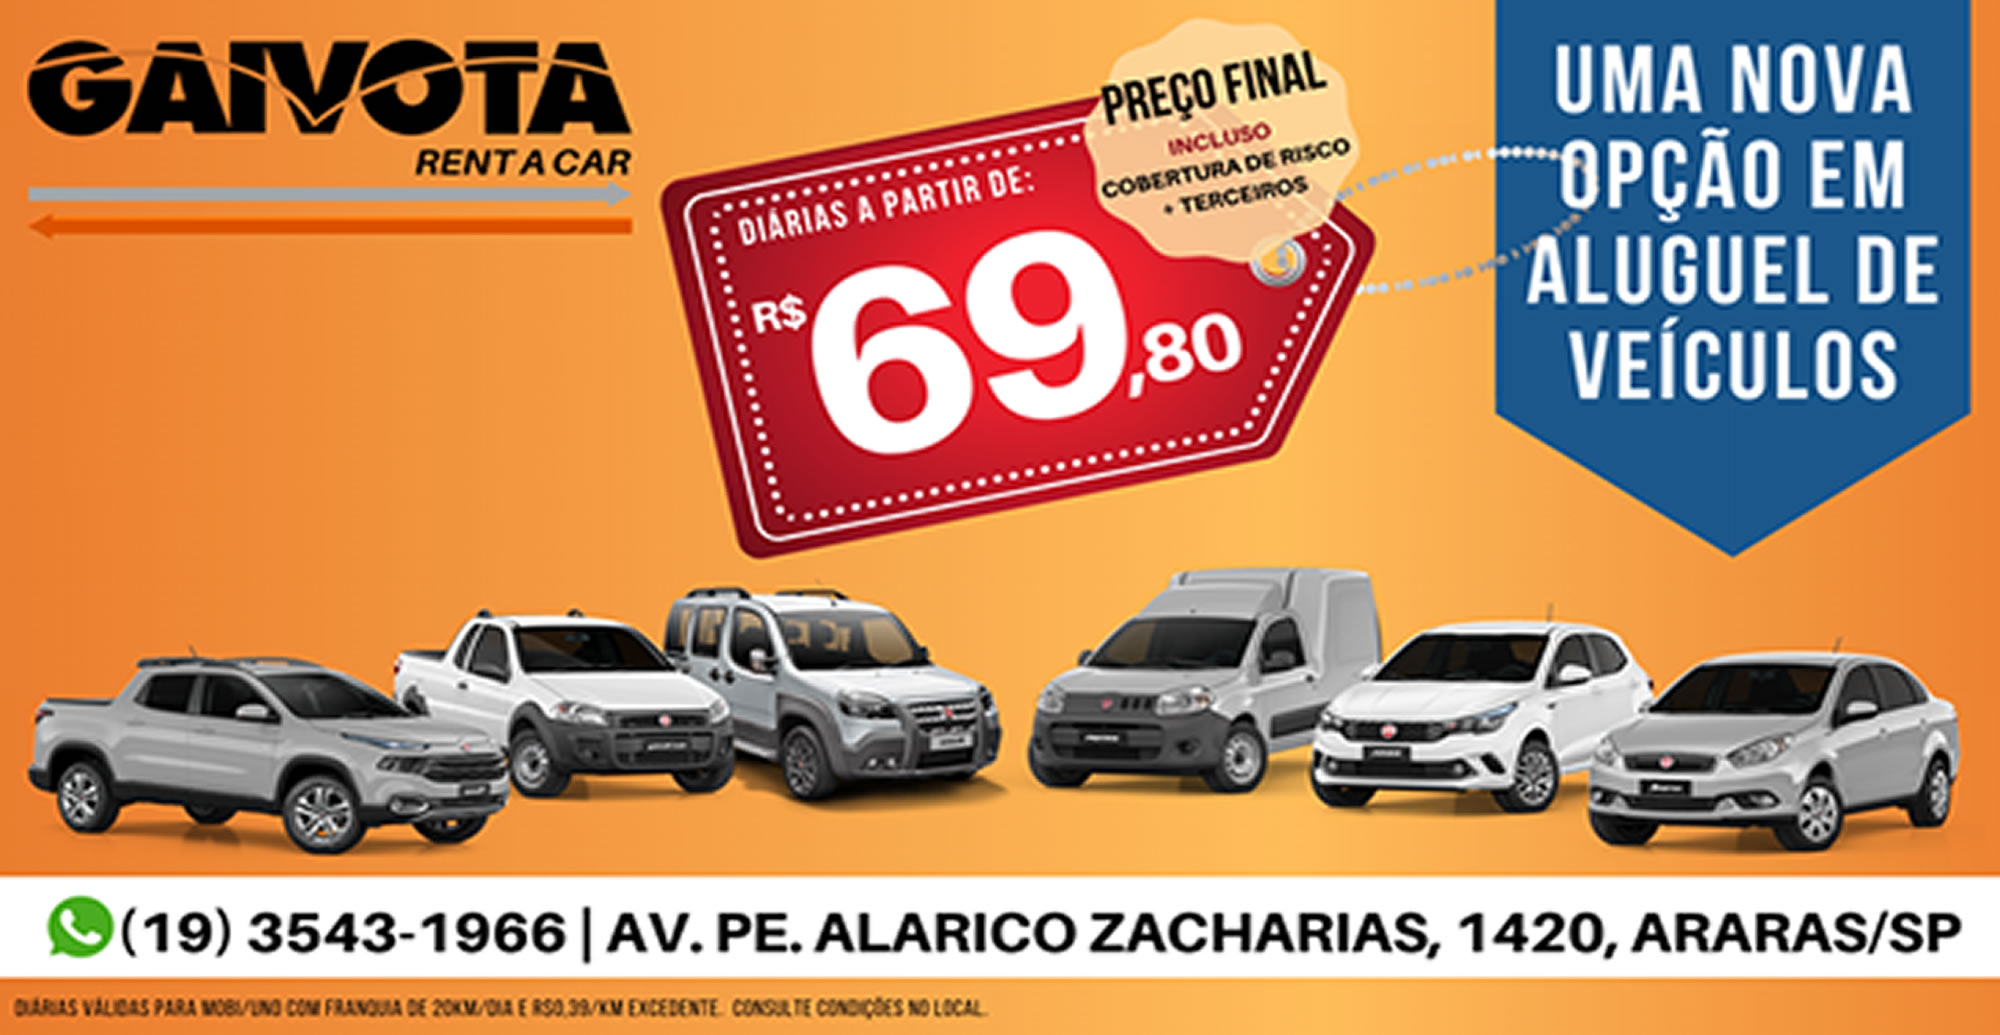 GAIVOTA RENT A CAR / Araras-SP